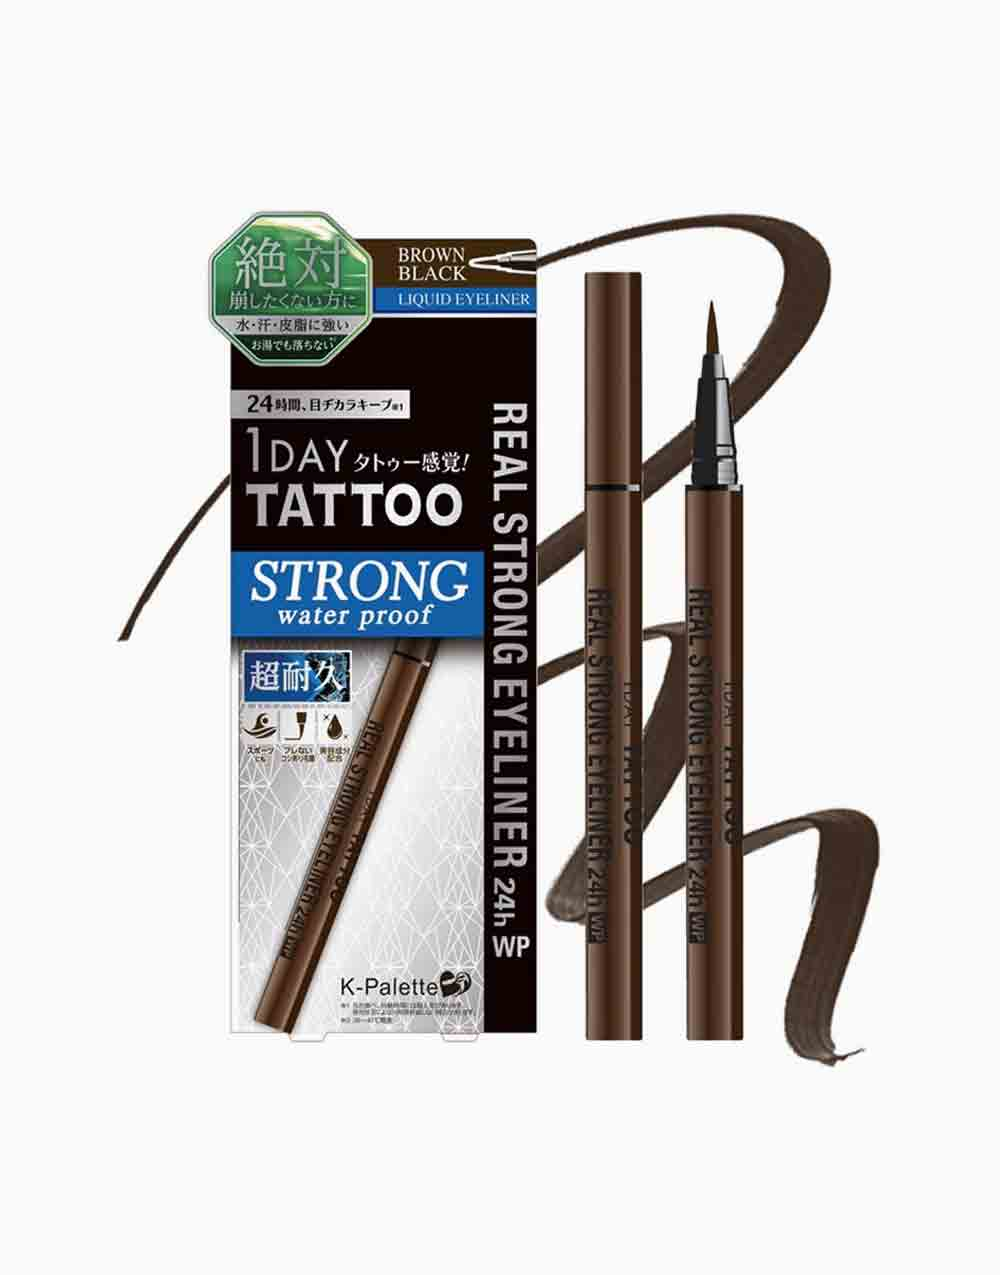 1Day Tattoo Real Strong Eyeliner 24H Waterproof by K-Palette | Brown Black